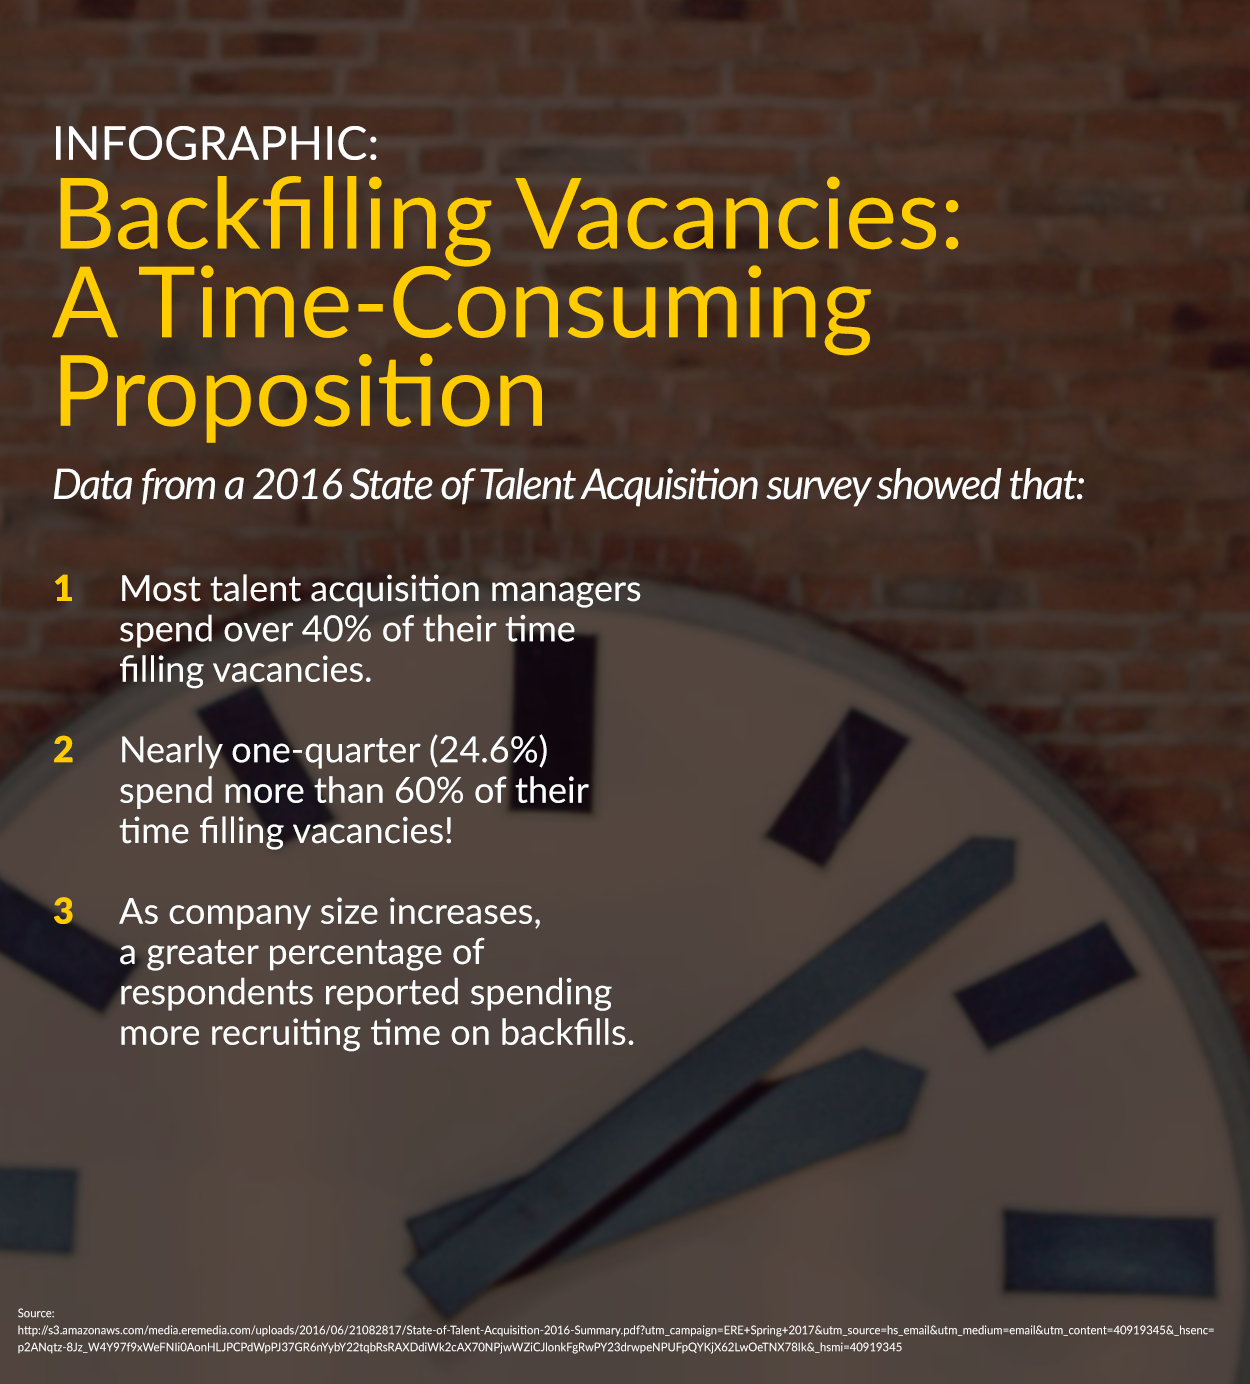 INFOGRAPHIC: Backfilling Vacancies: A Time-Consuming Proposition